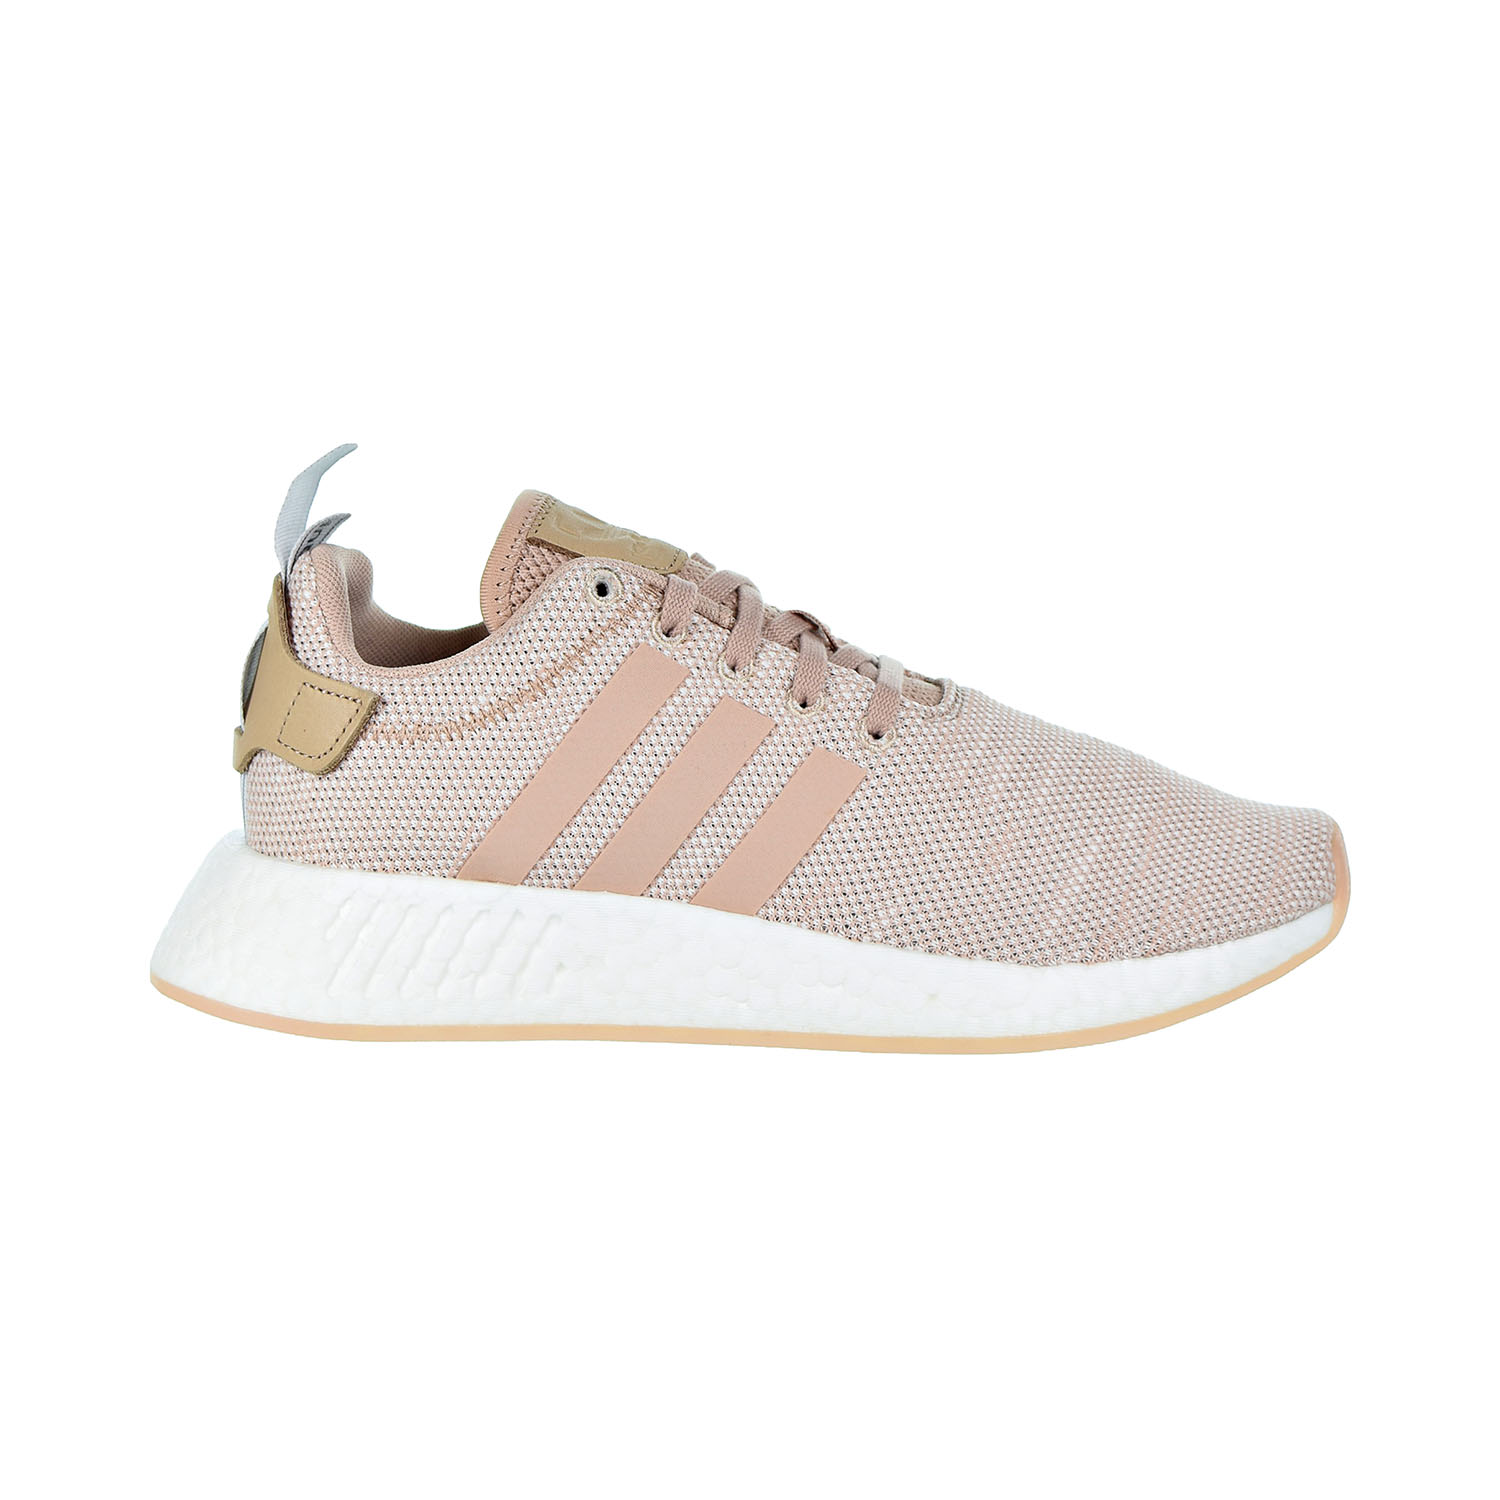 best service 7c675 77a88 Details about Adidas NMD_R2 Women's Shoes Ash Pearl/White AQ0197